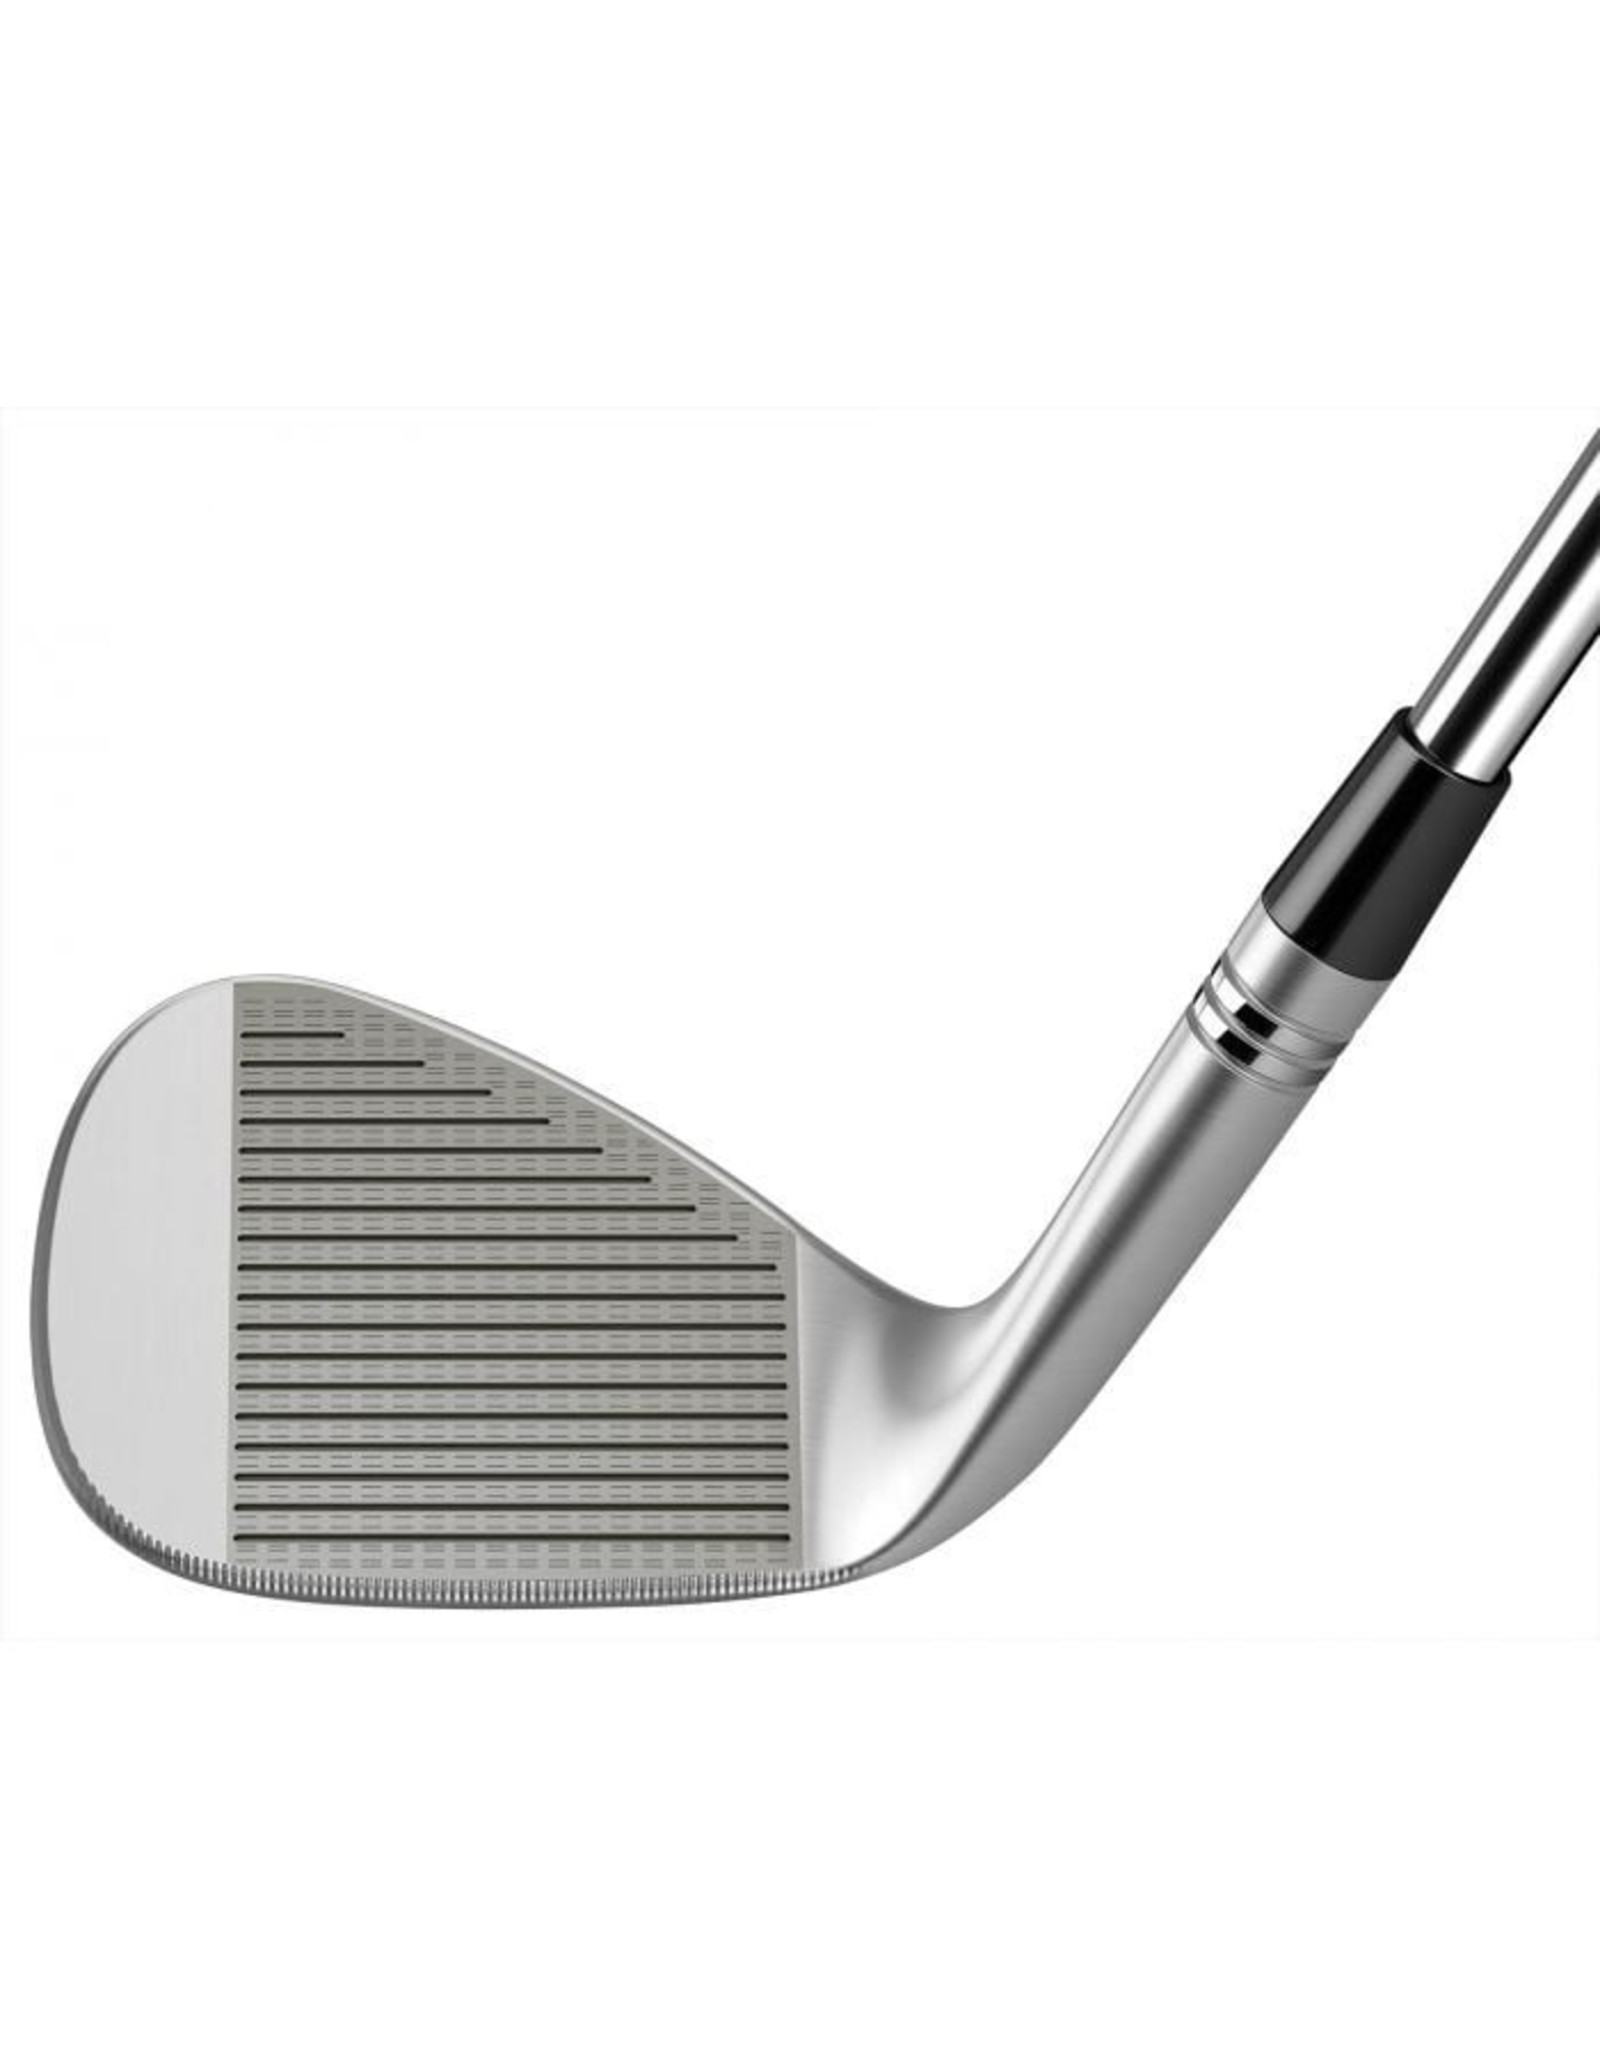 TAYLORMADE TAYLORMADE 2021 MG2 WEDGE